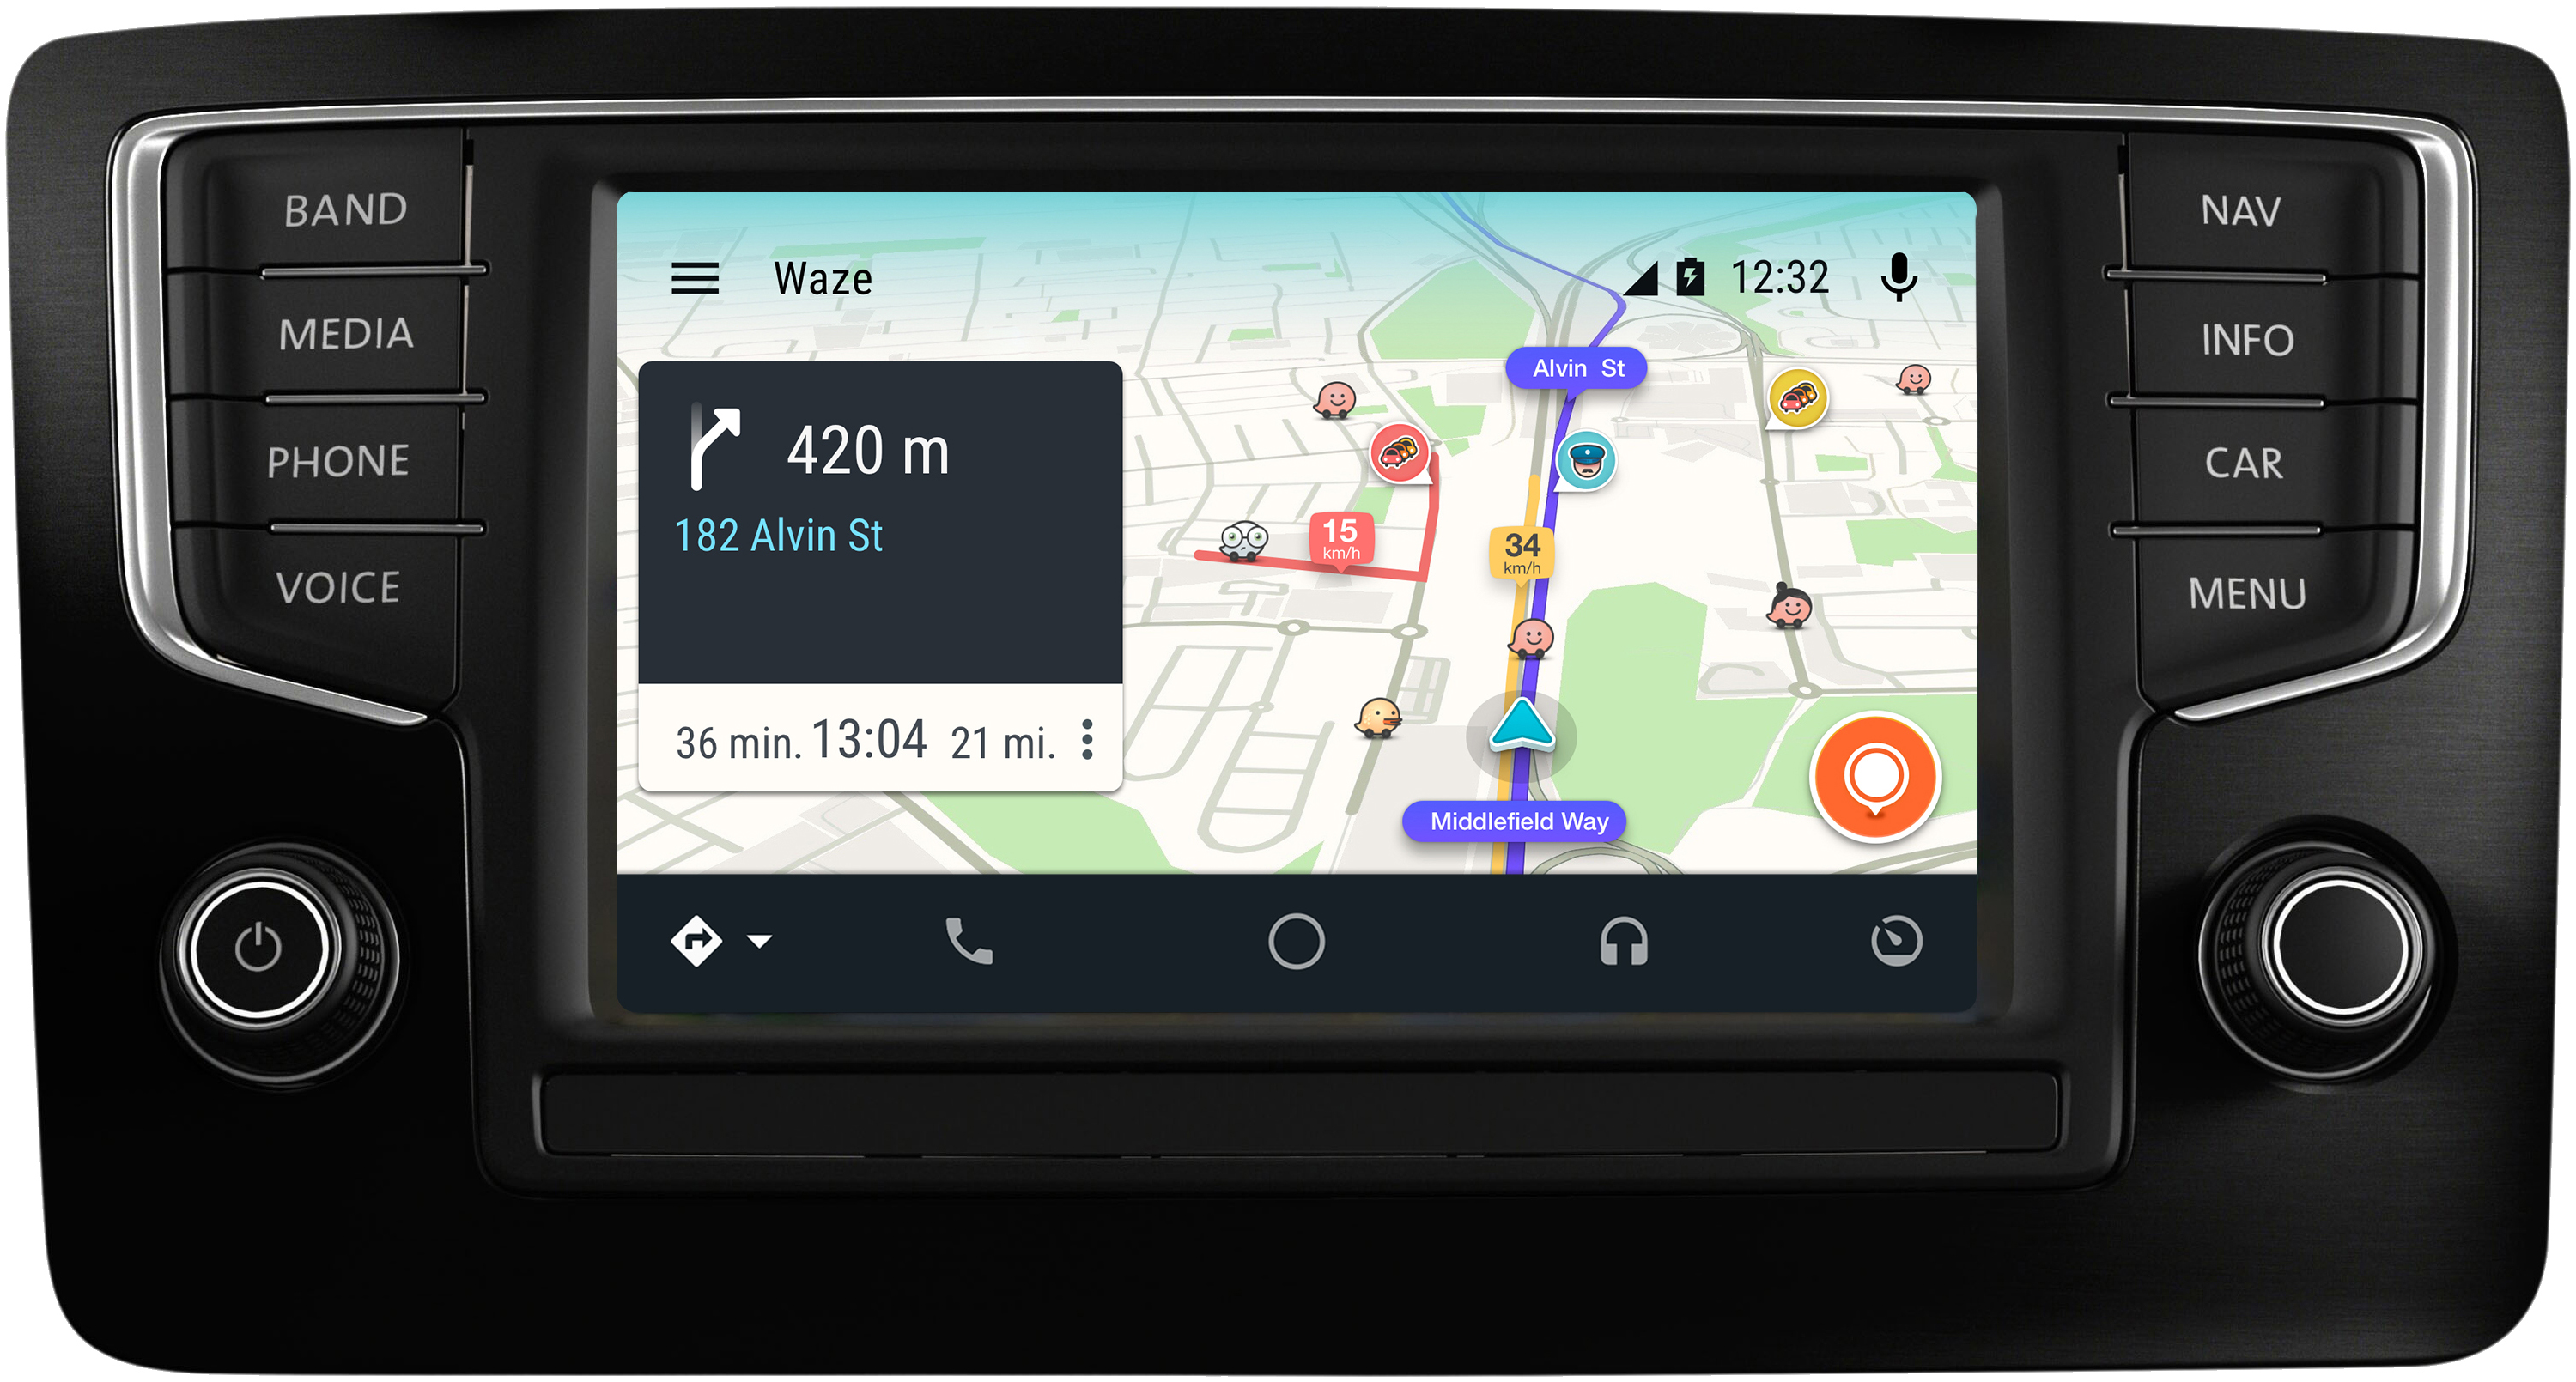 waze s 39 invite sur le gps des ford peugeot toyota mwc 2017 frandroid. Black Bedroom Furniture Sets. Home Design Ideas